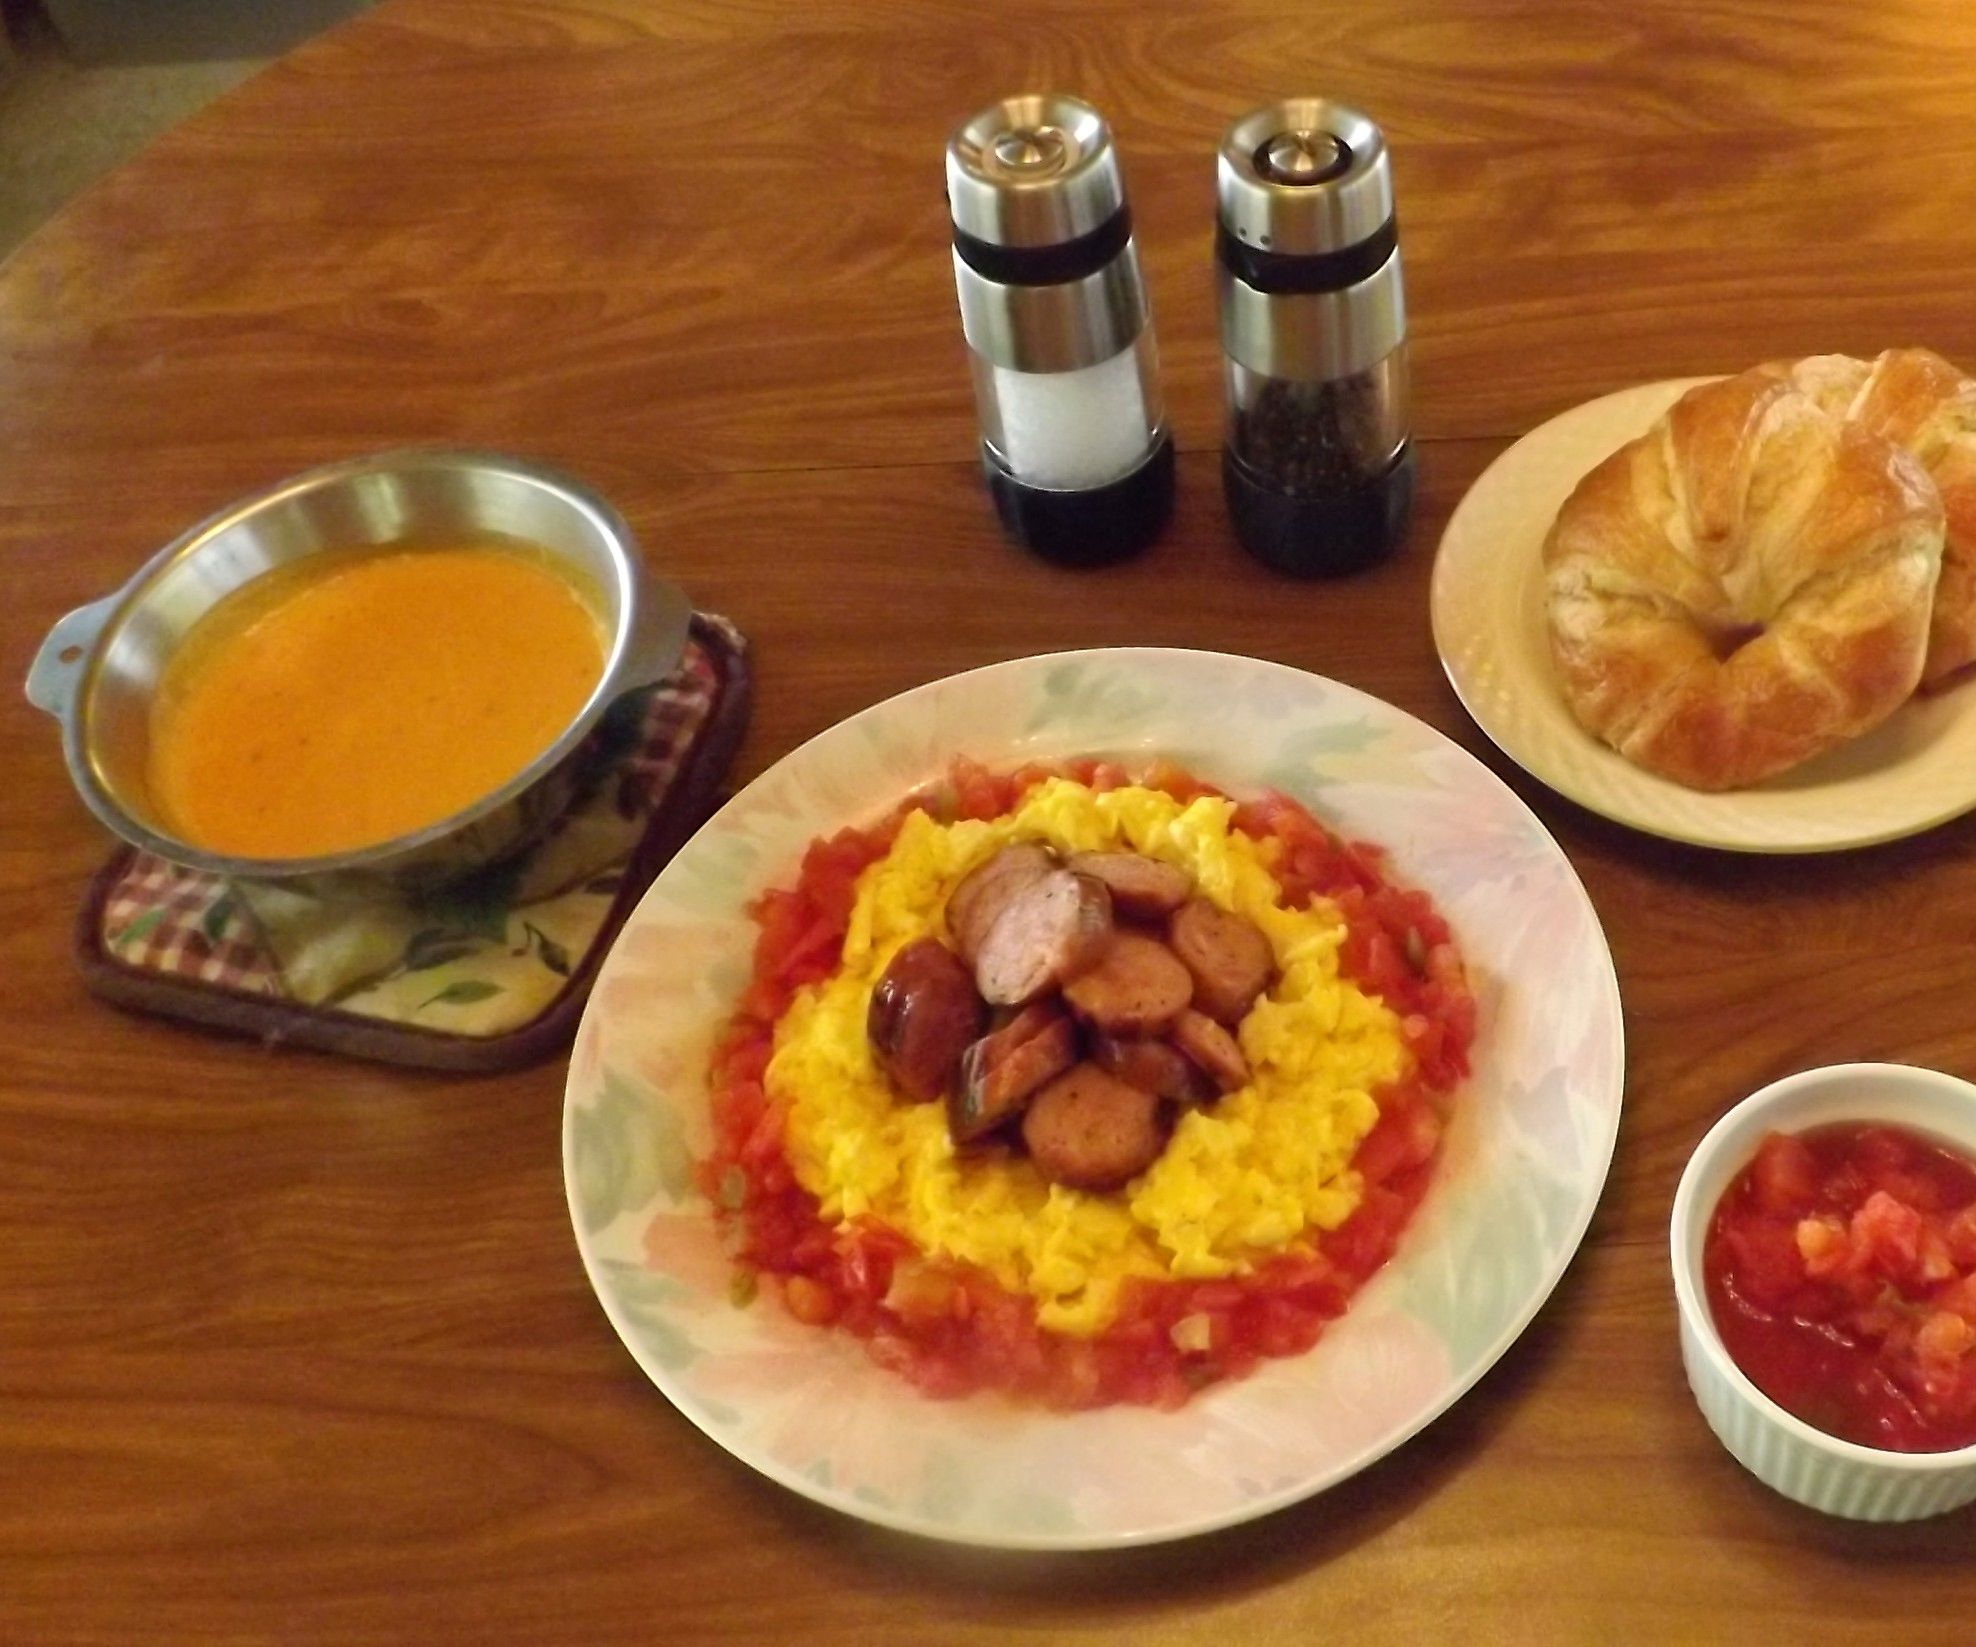 CAJUN SMOKED SAUSAGE & SCRAMBLED EGGS with TOMATOES & CHEESE SAUCE